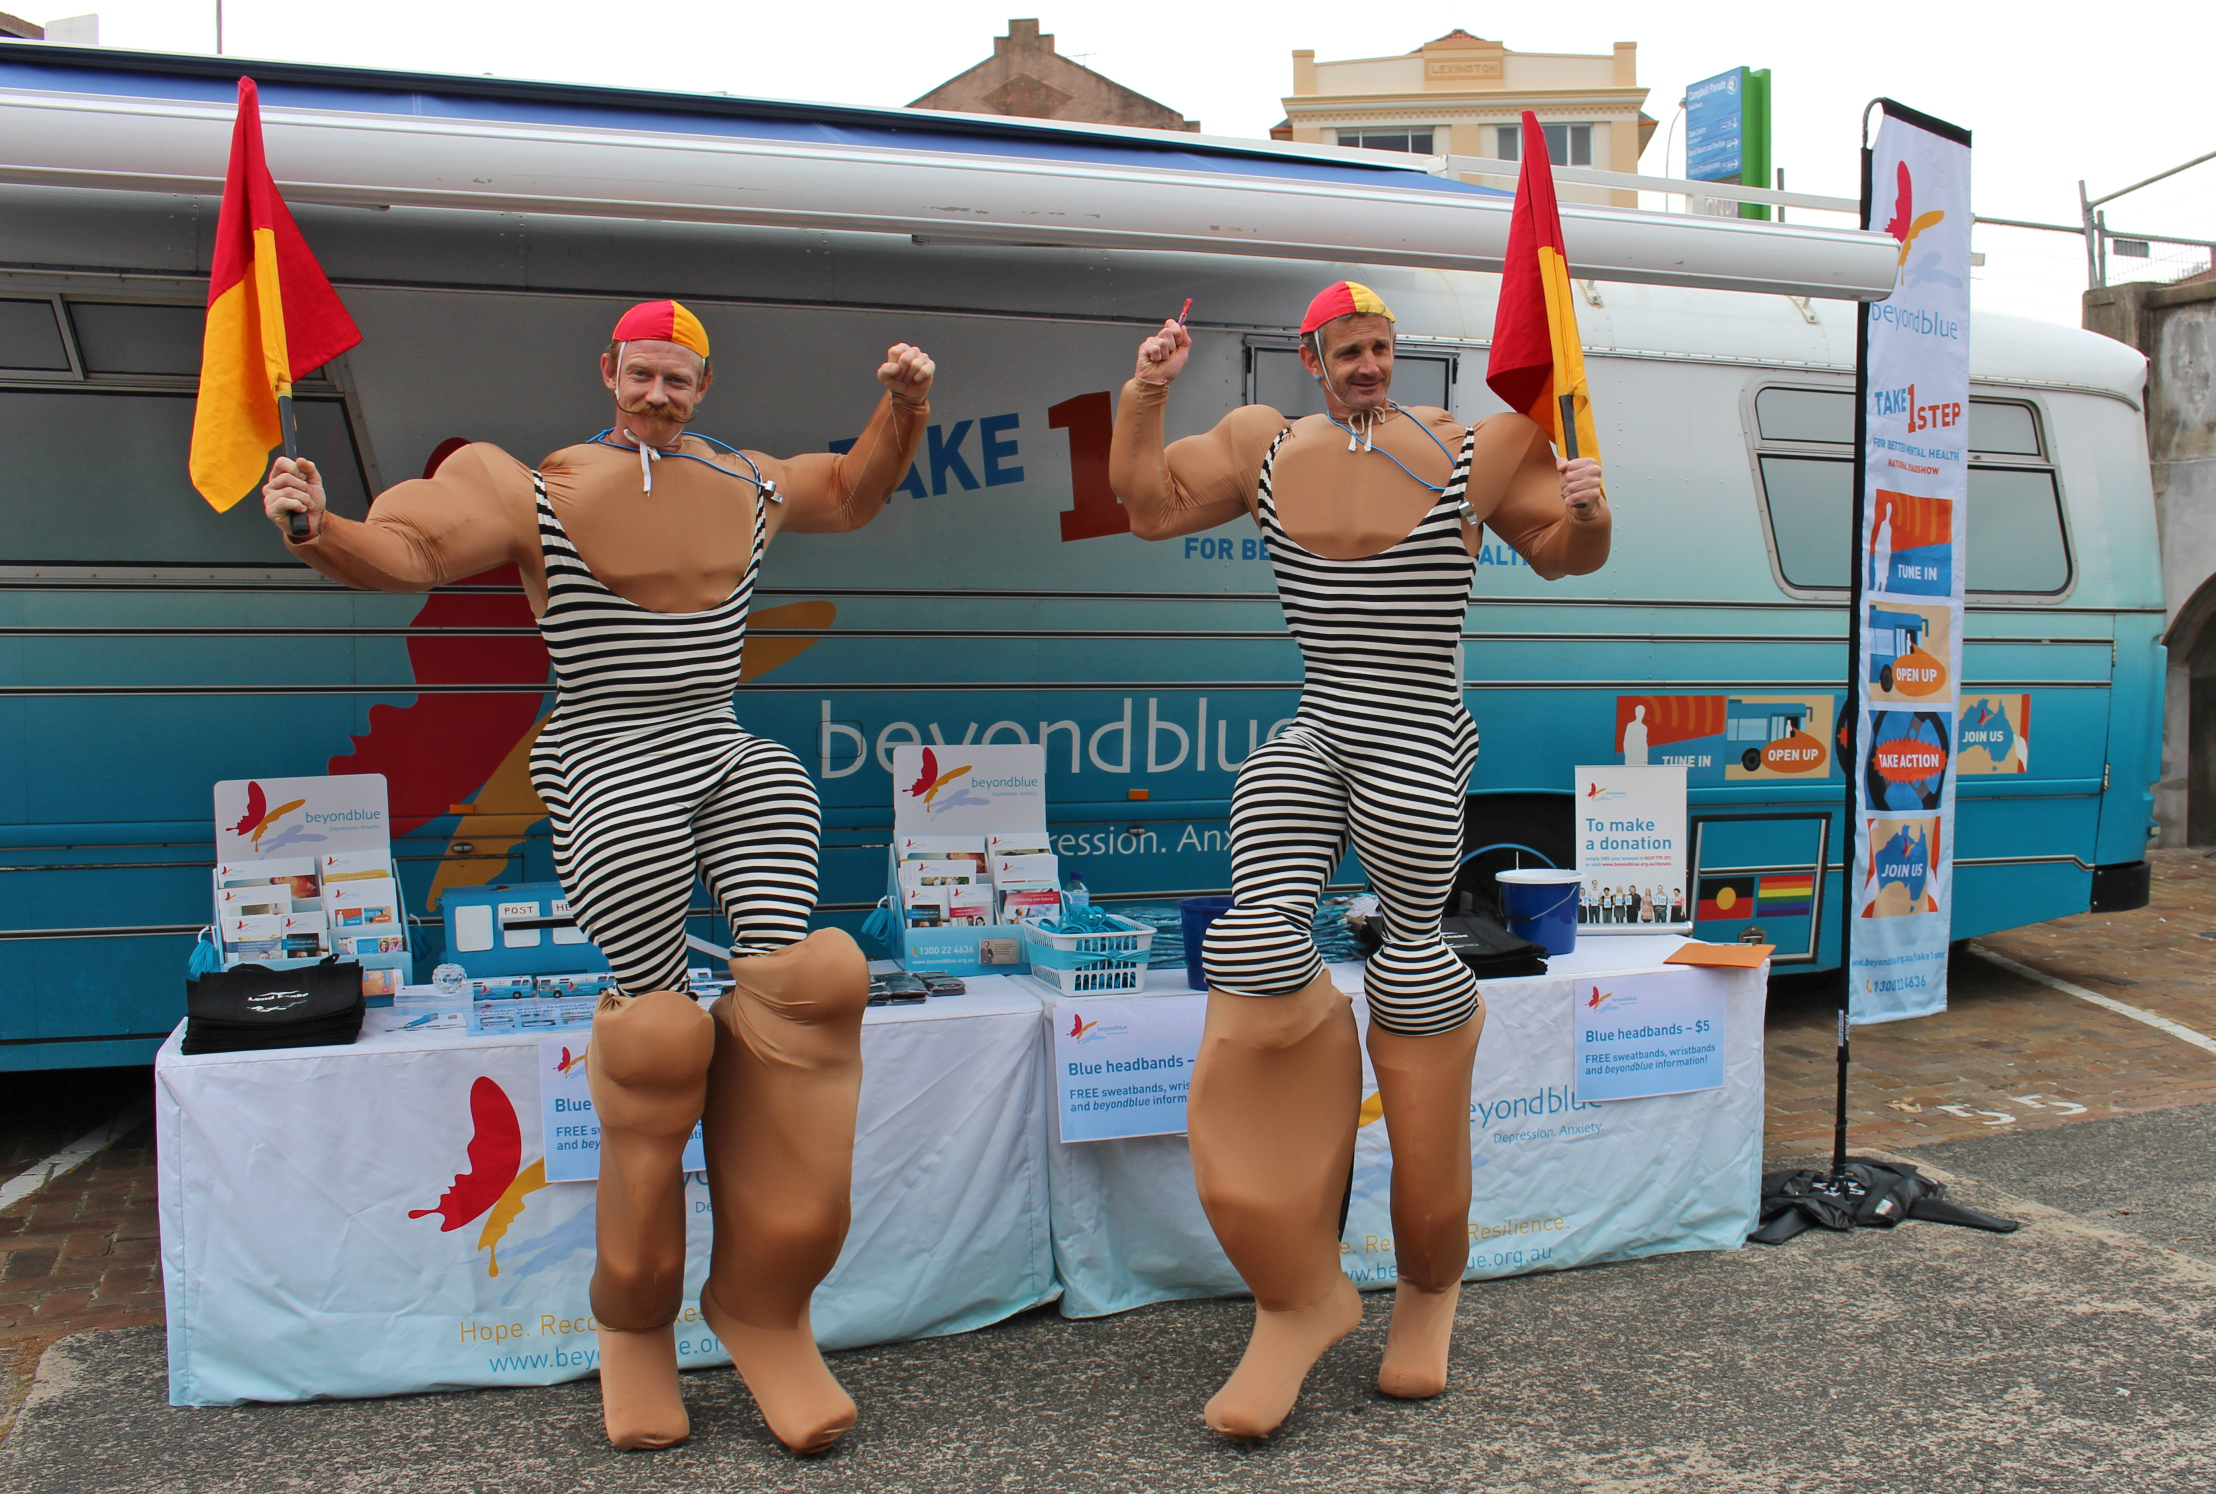 A pair of very large lifesavers sauntered past for a photo at City2Surf: NSW.